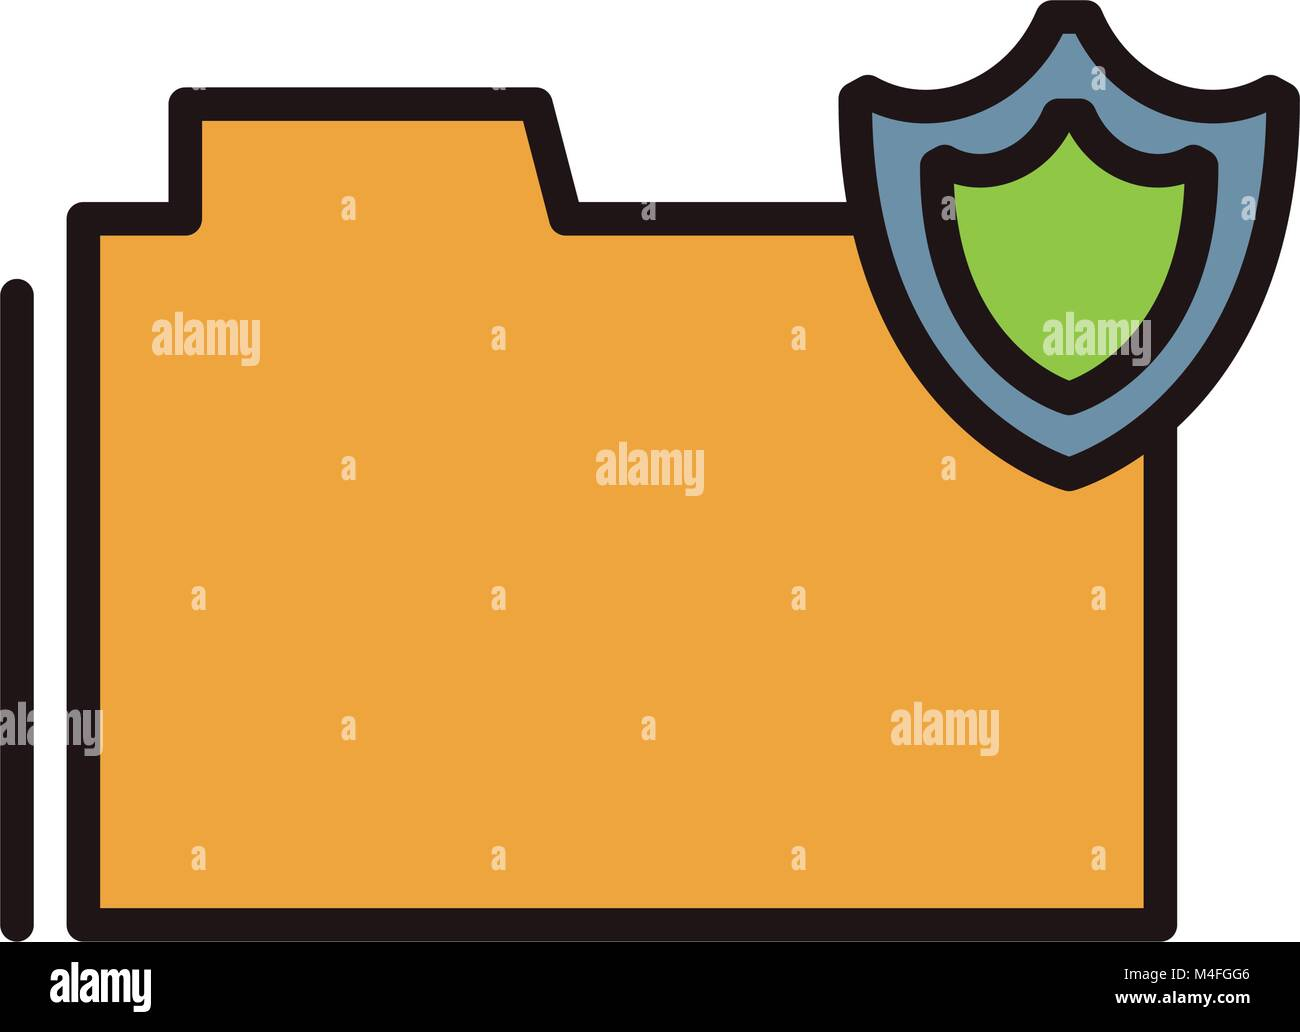 Secure folder symbol - Stock Image